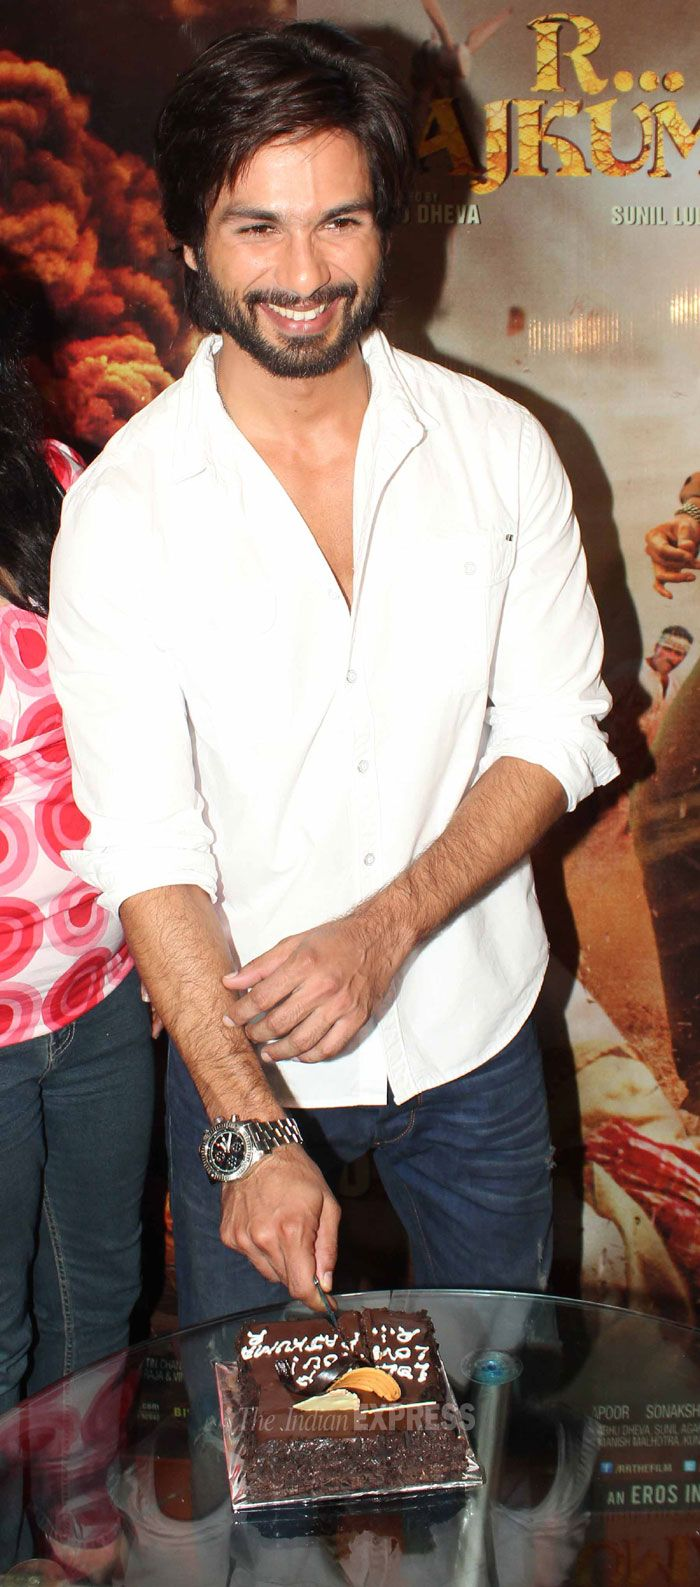 Shahid Kapoor went on to watch his film R...Rajkumar with his fans. #Fashion…